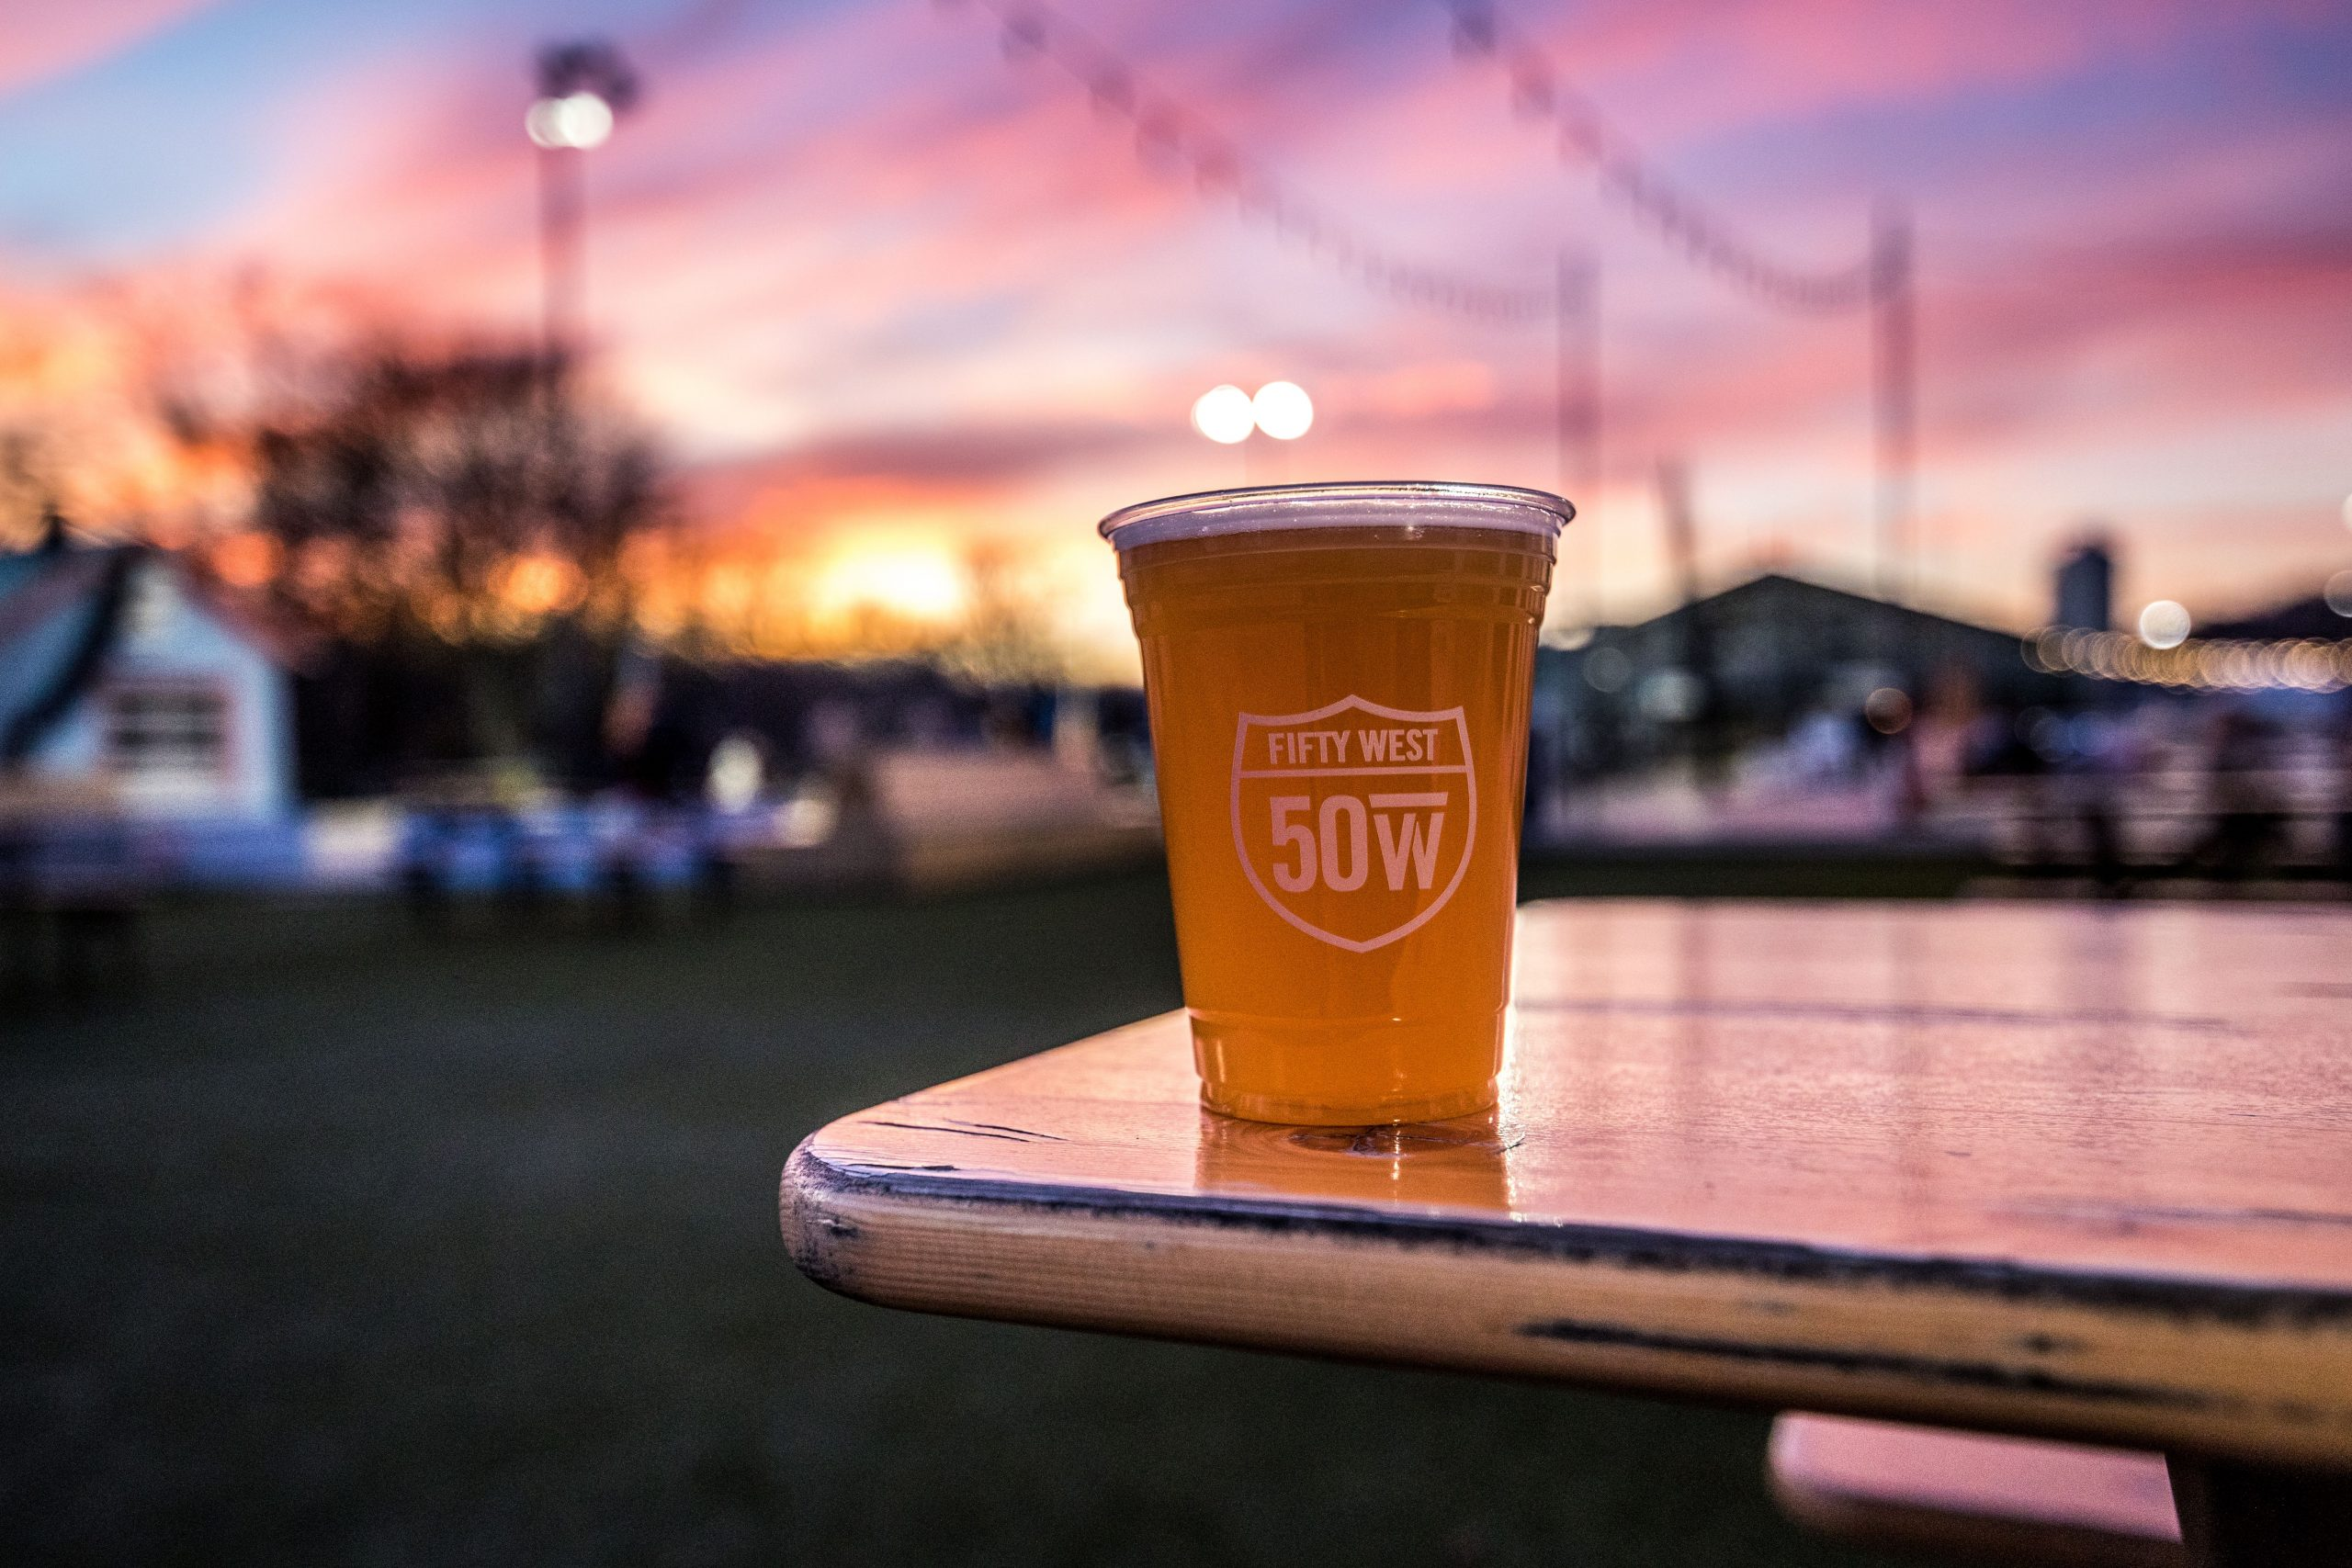 50 West brewery cup of beer with sunset